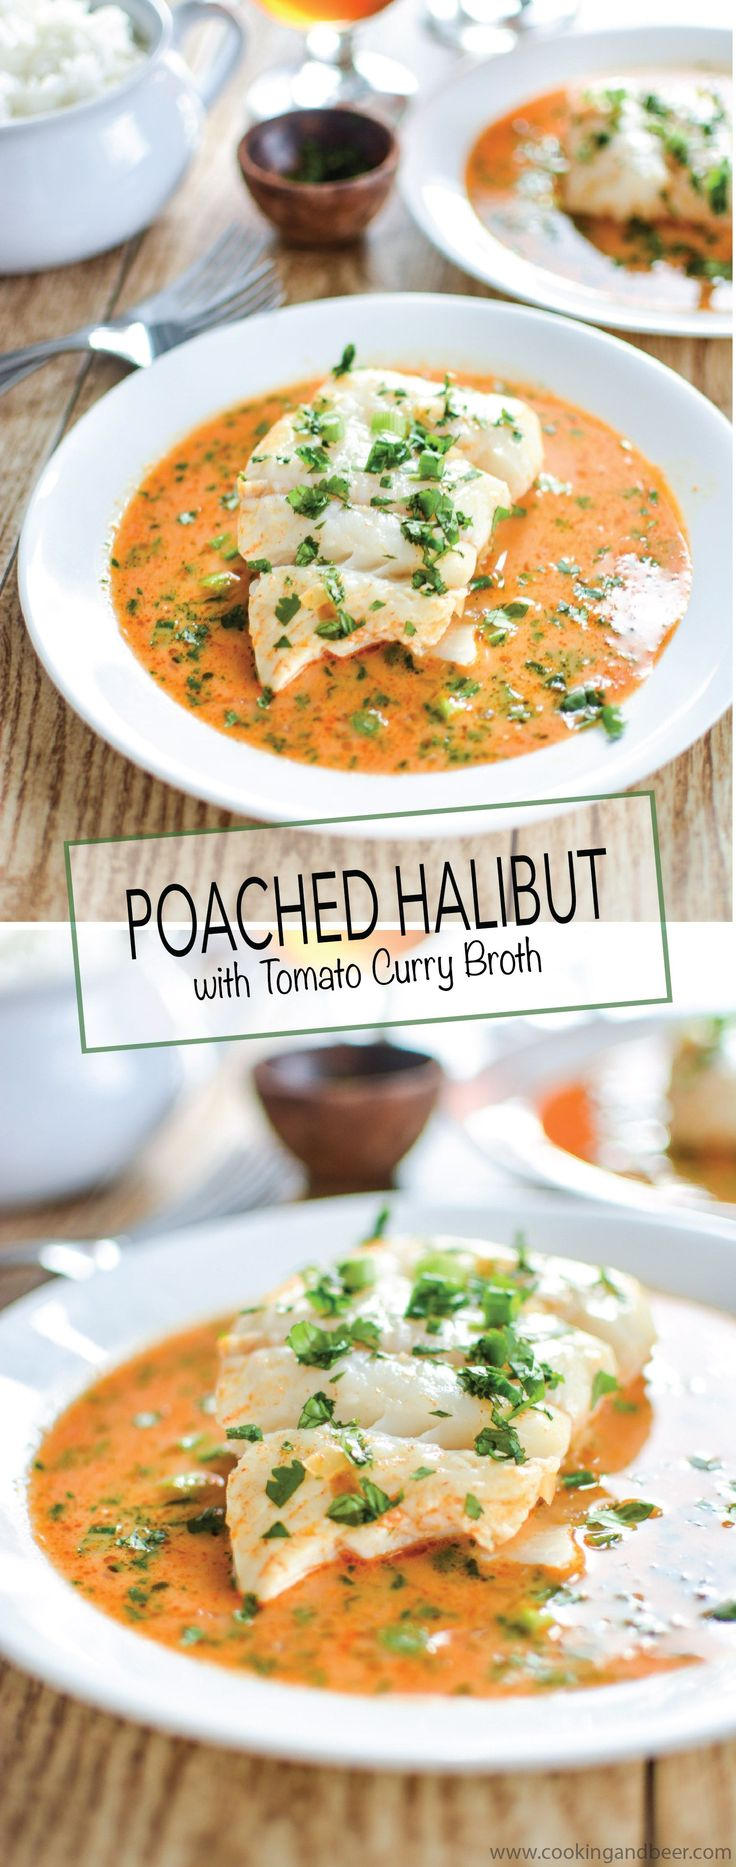 Poached Halibut in Tomato Curry Broth is a simple weeknight dinner recipe that the entire family can enjoy! #WildAlaskaSeafood #CleverGirls   www.cookingandbeer.com